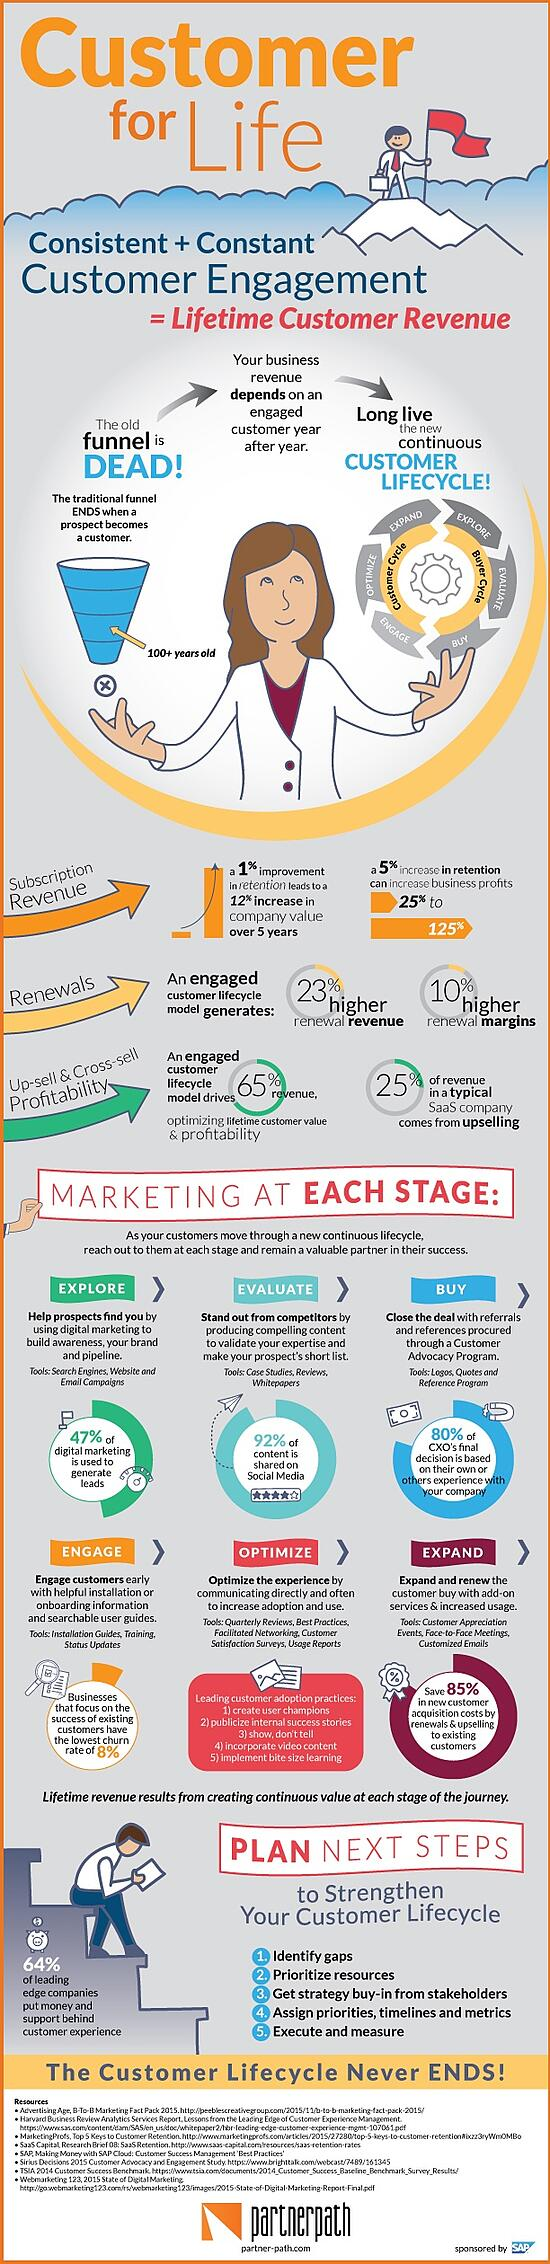 Customer Lifecycle Infographic